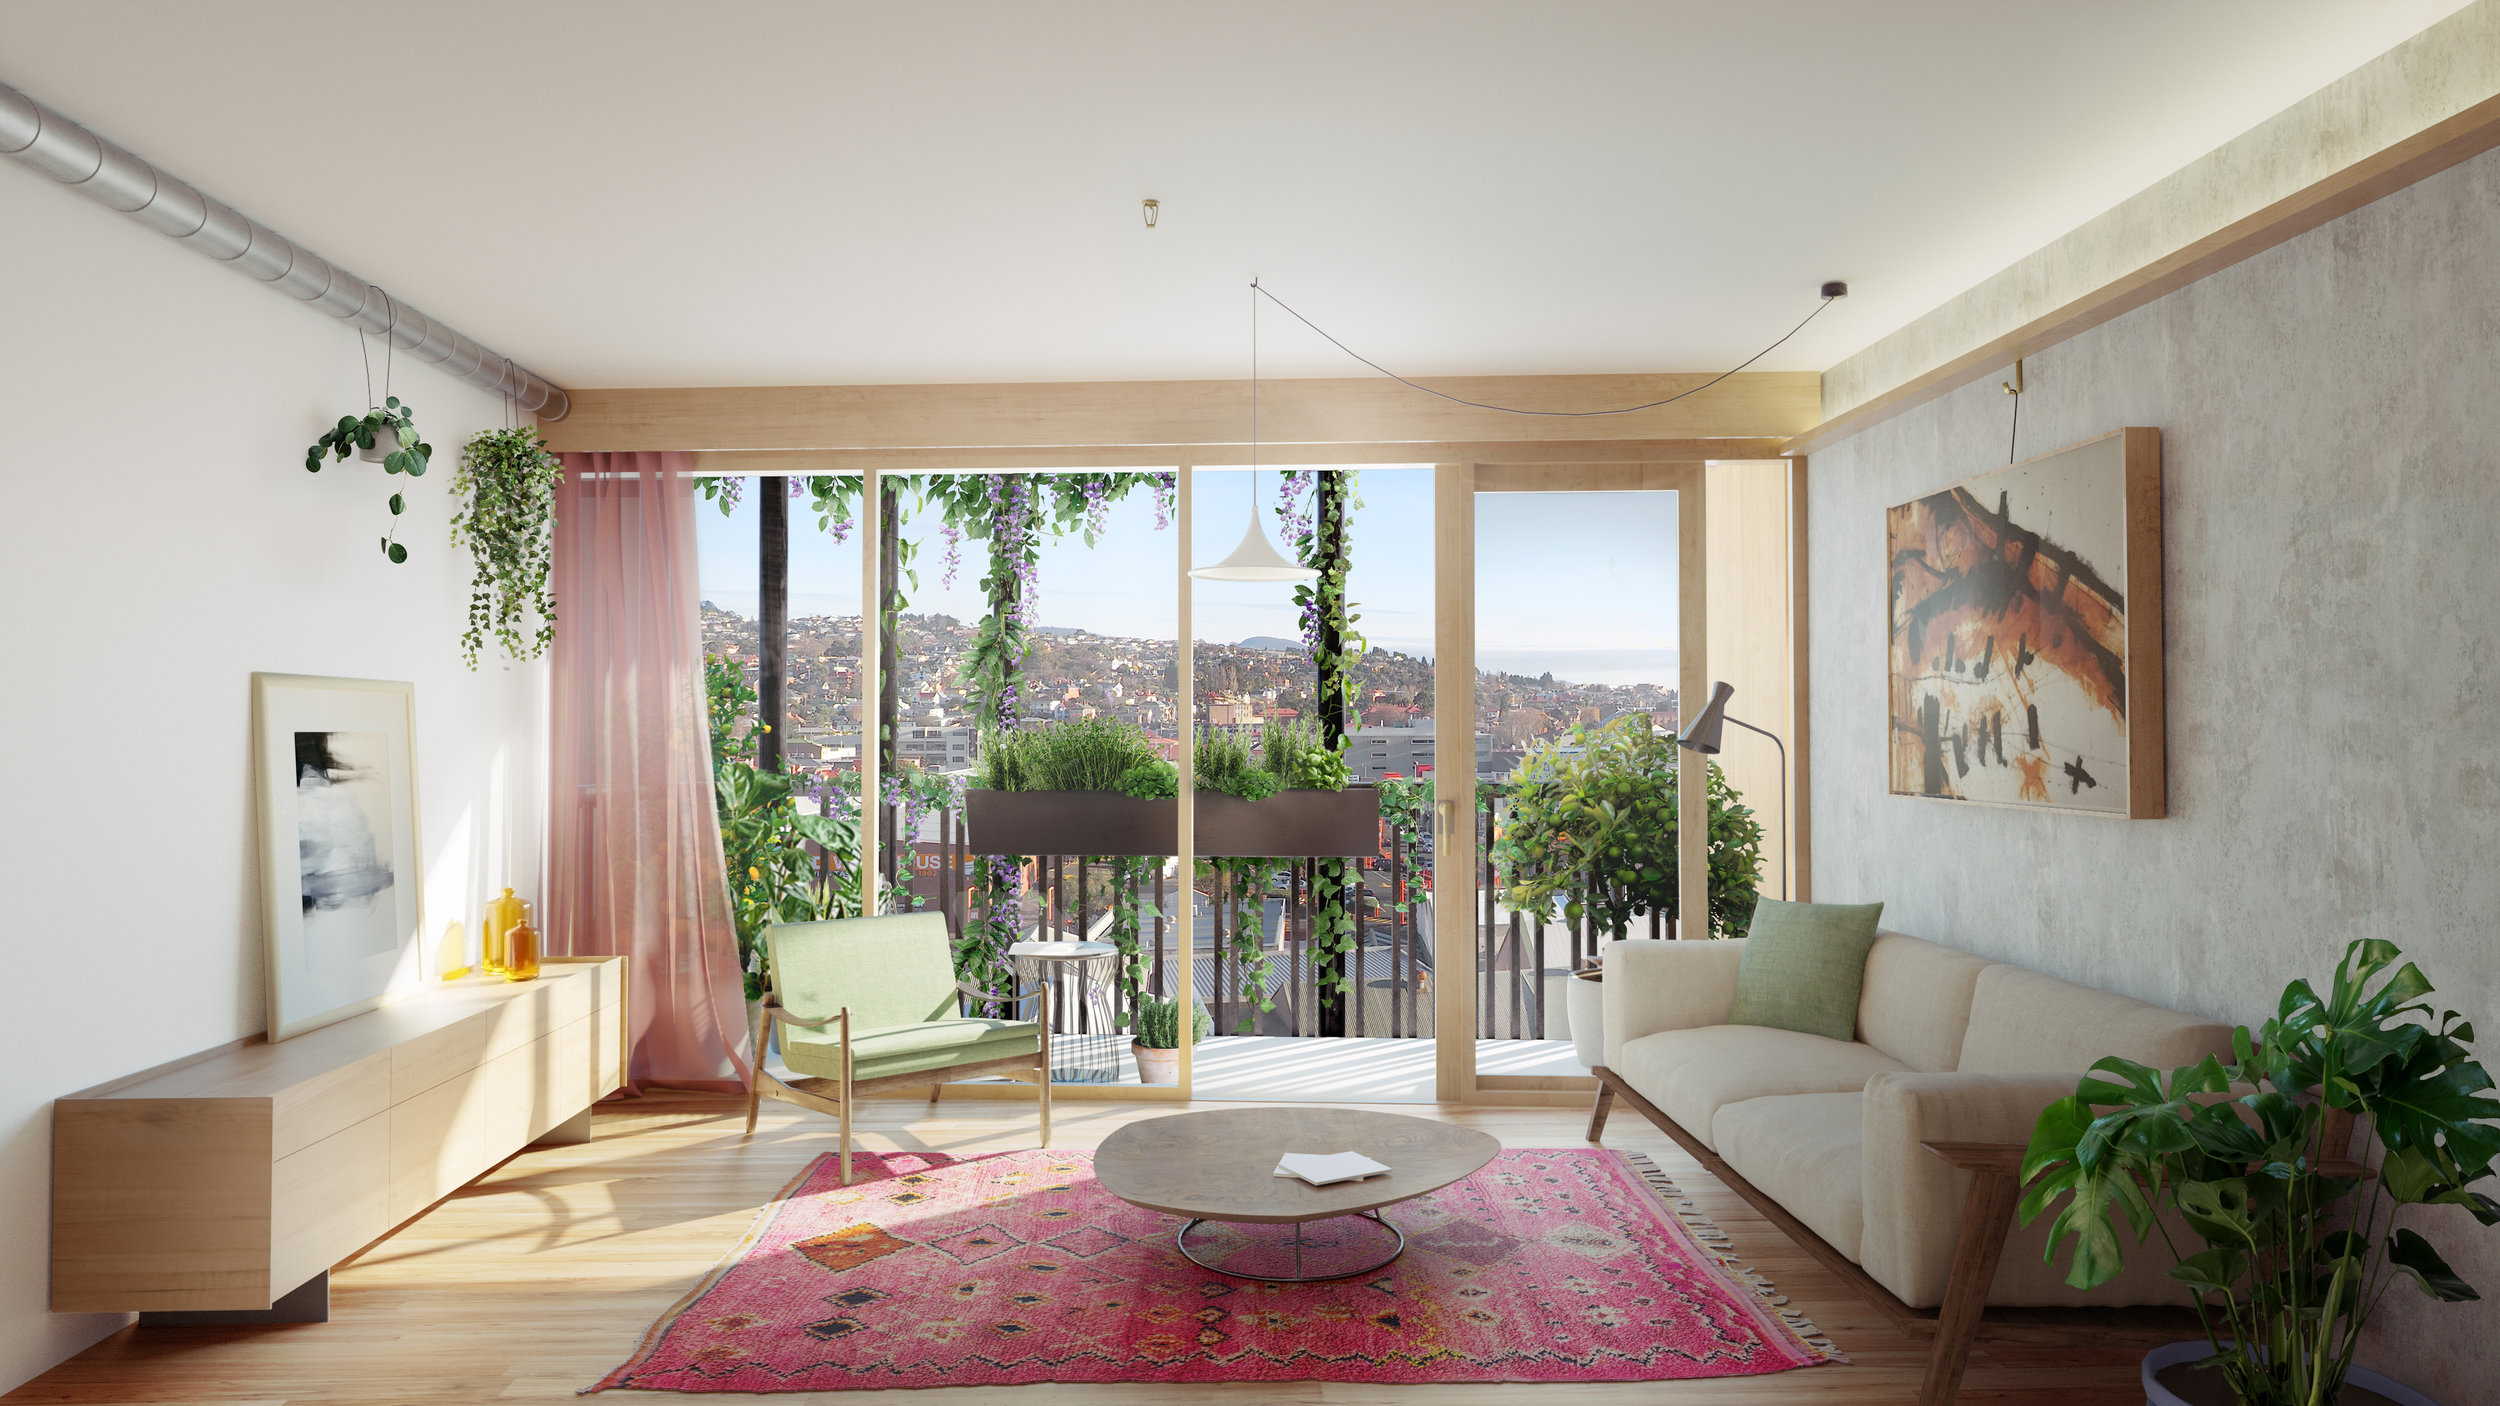 Living spaces will take full advantage of natural light and clever layout to cancel out the need for air conditioning.